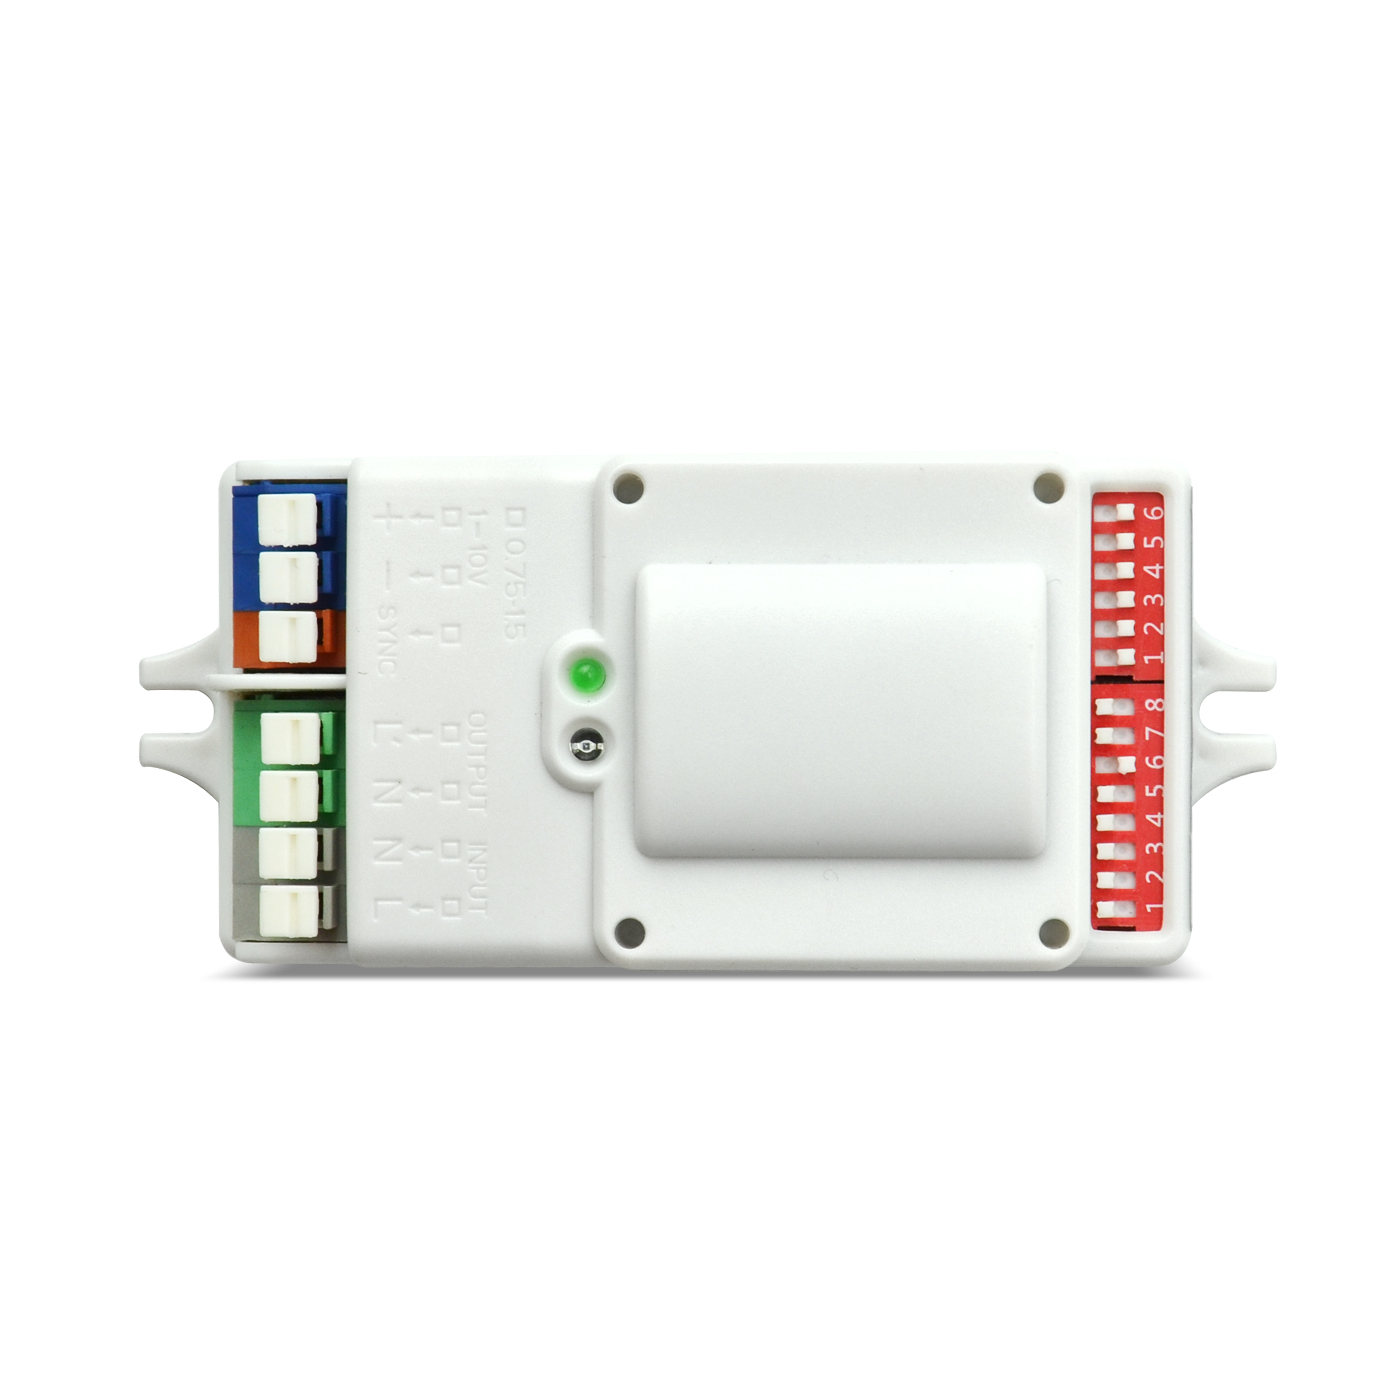 OEM Customized Light Dimmer Controller - 220-240VAC 1-10V Dimming Motion Sensor – Euchips